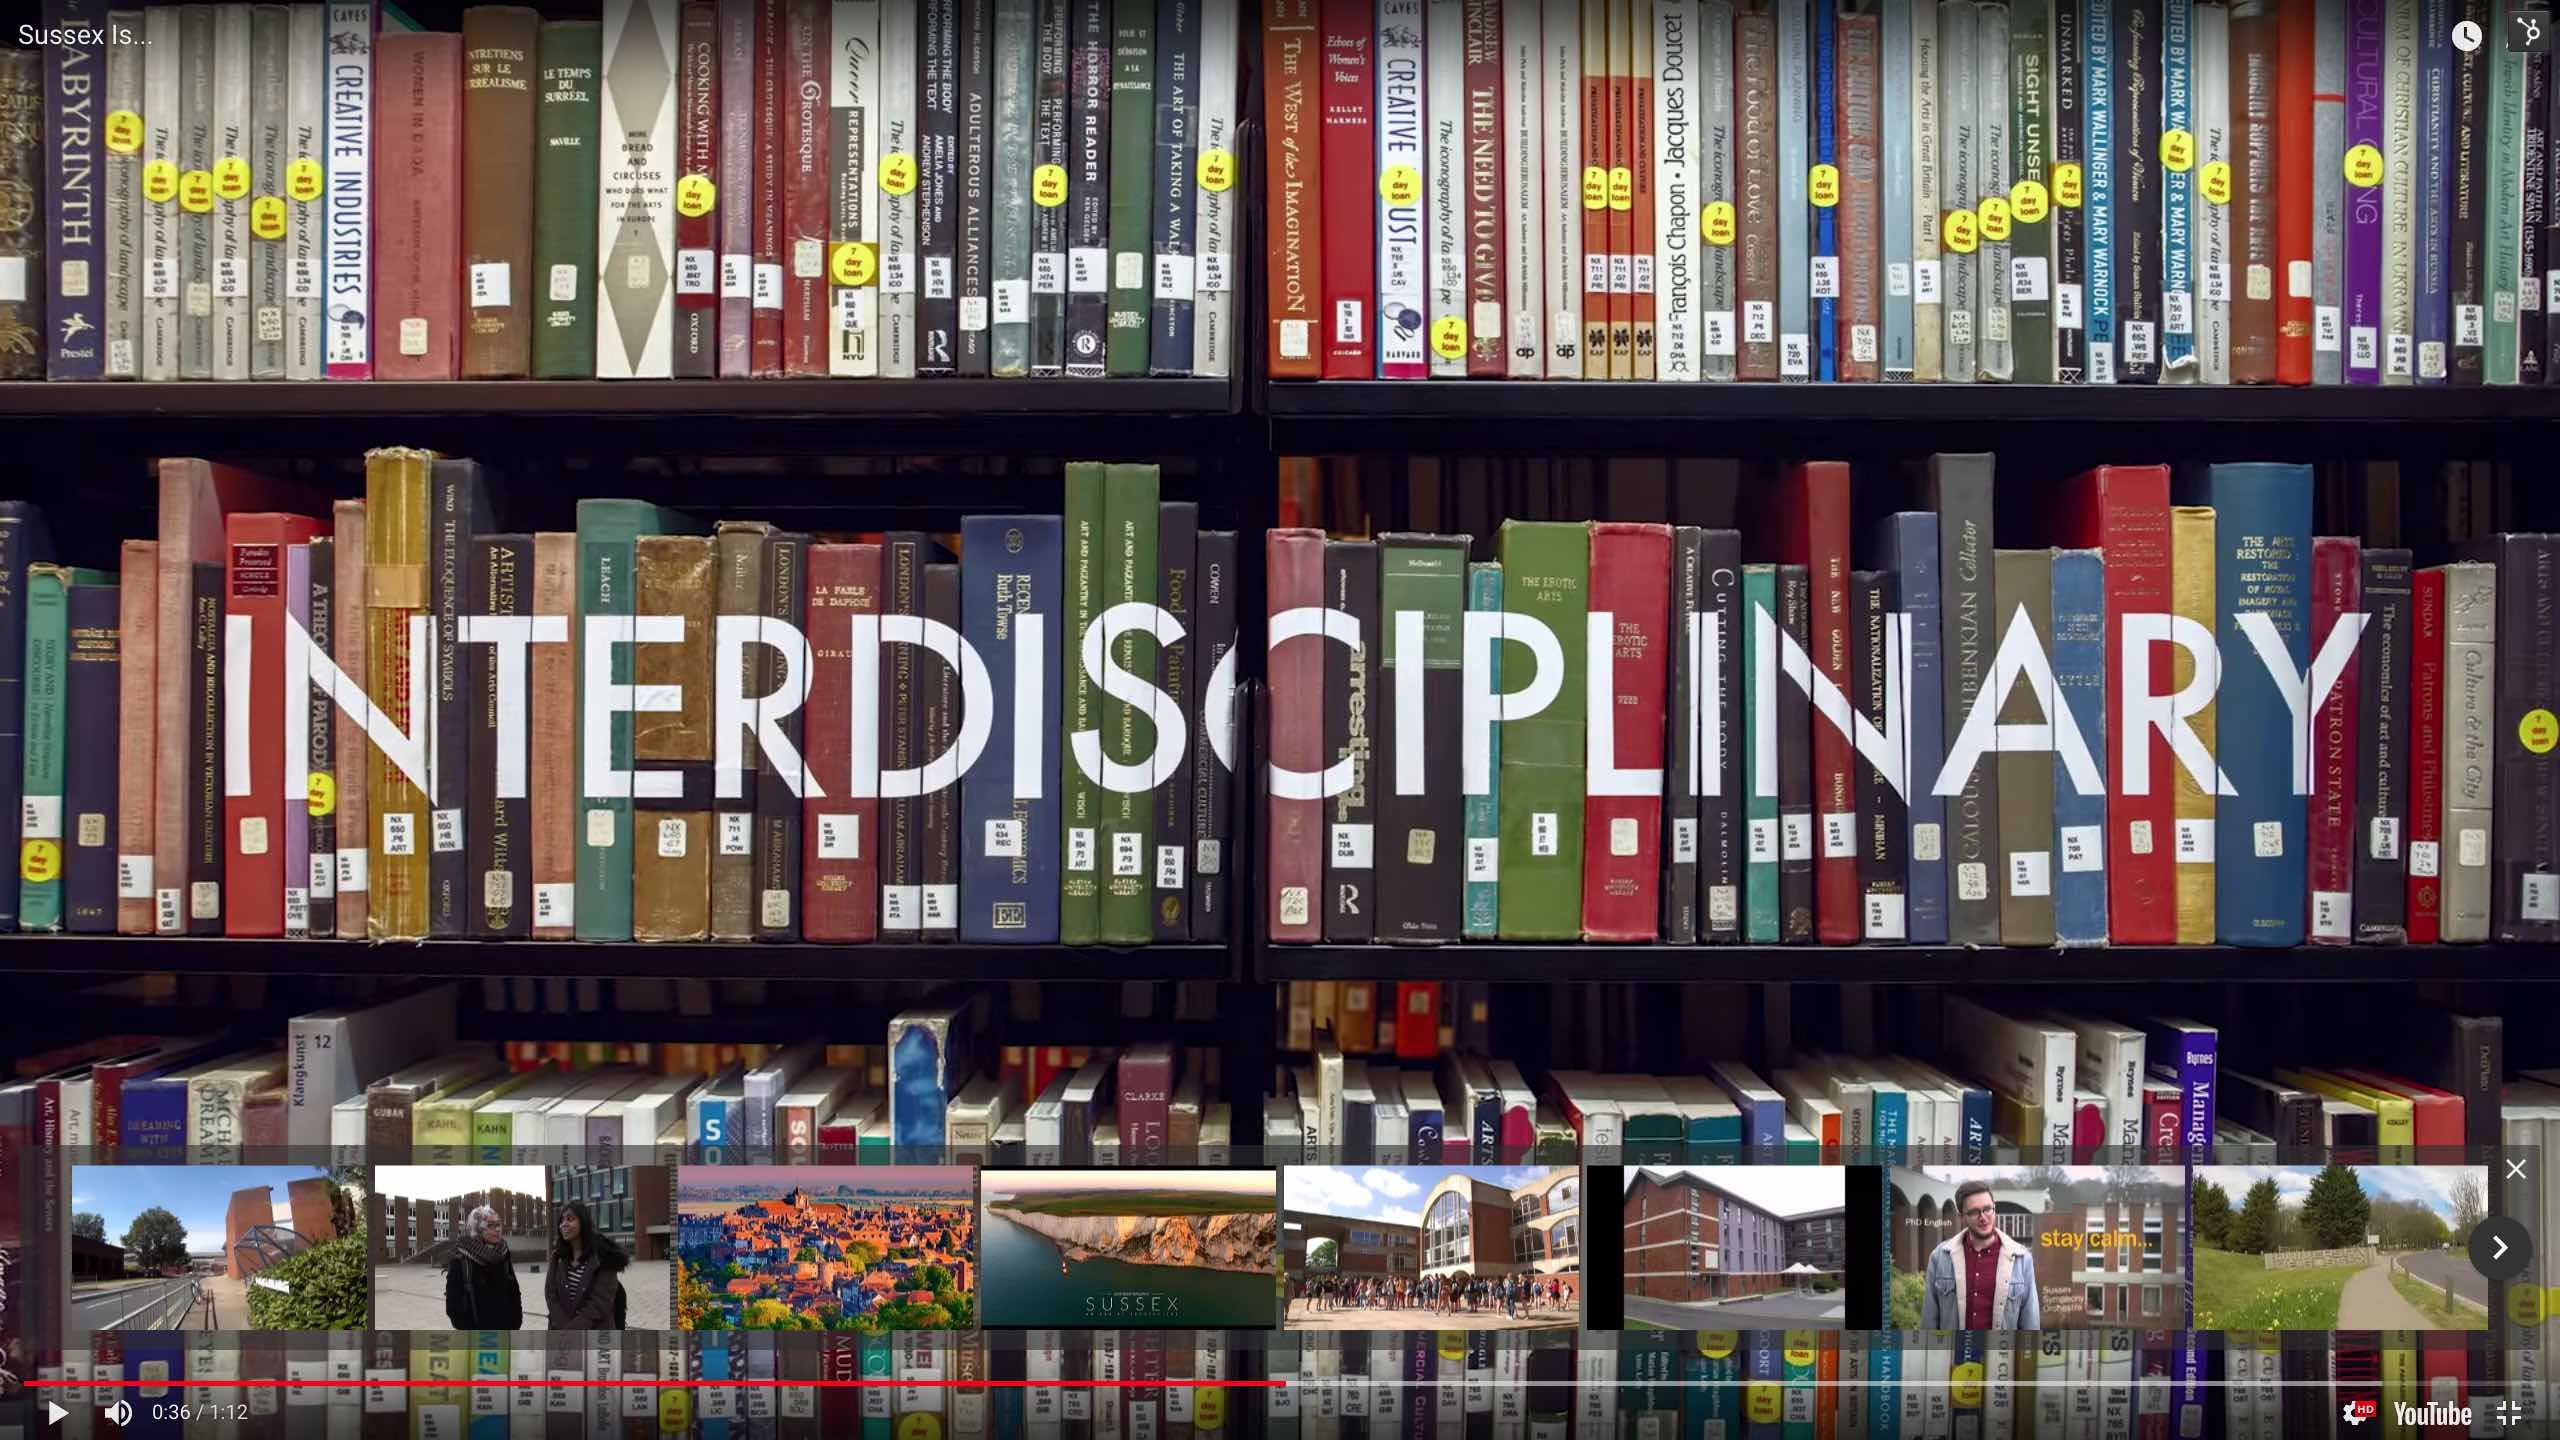 University admissions videos: five great examples